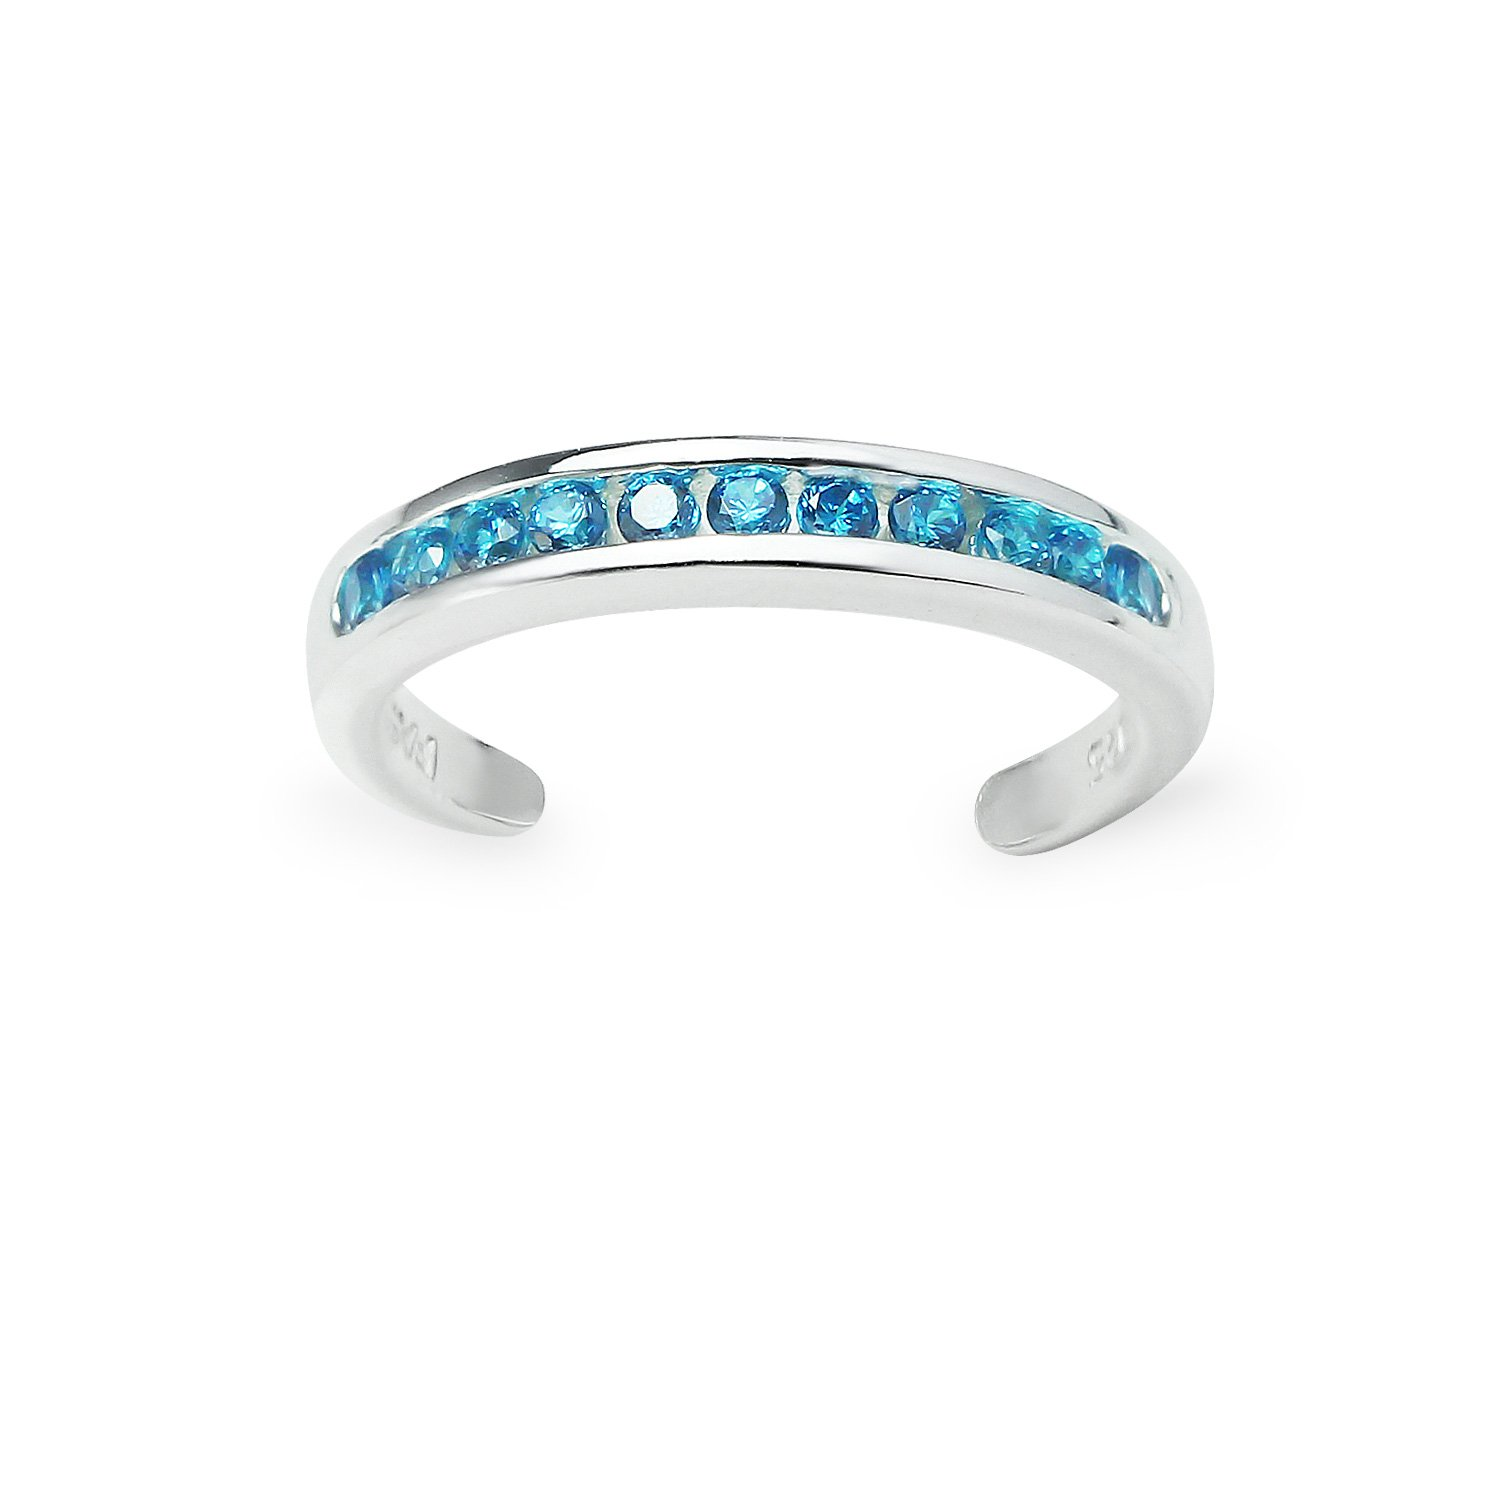 Sterling Silver Channel Light Blue Cubic Zirconia CZ Sparkling Adjustable Toe Ring